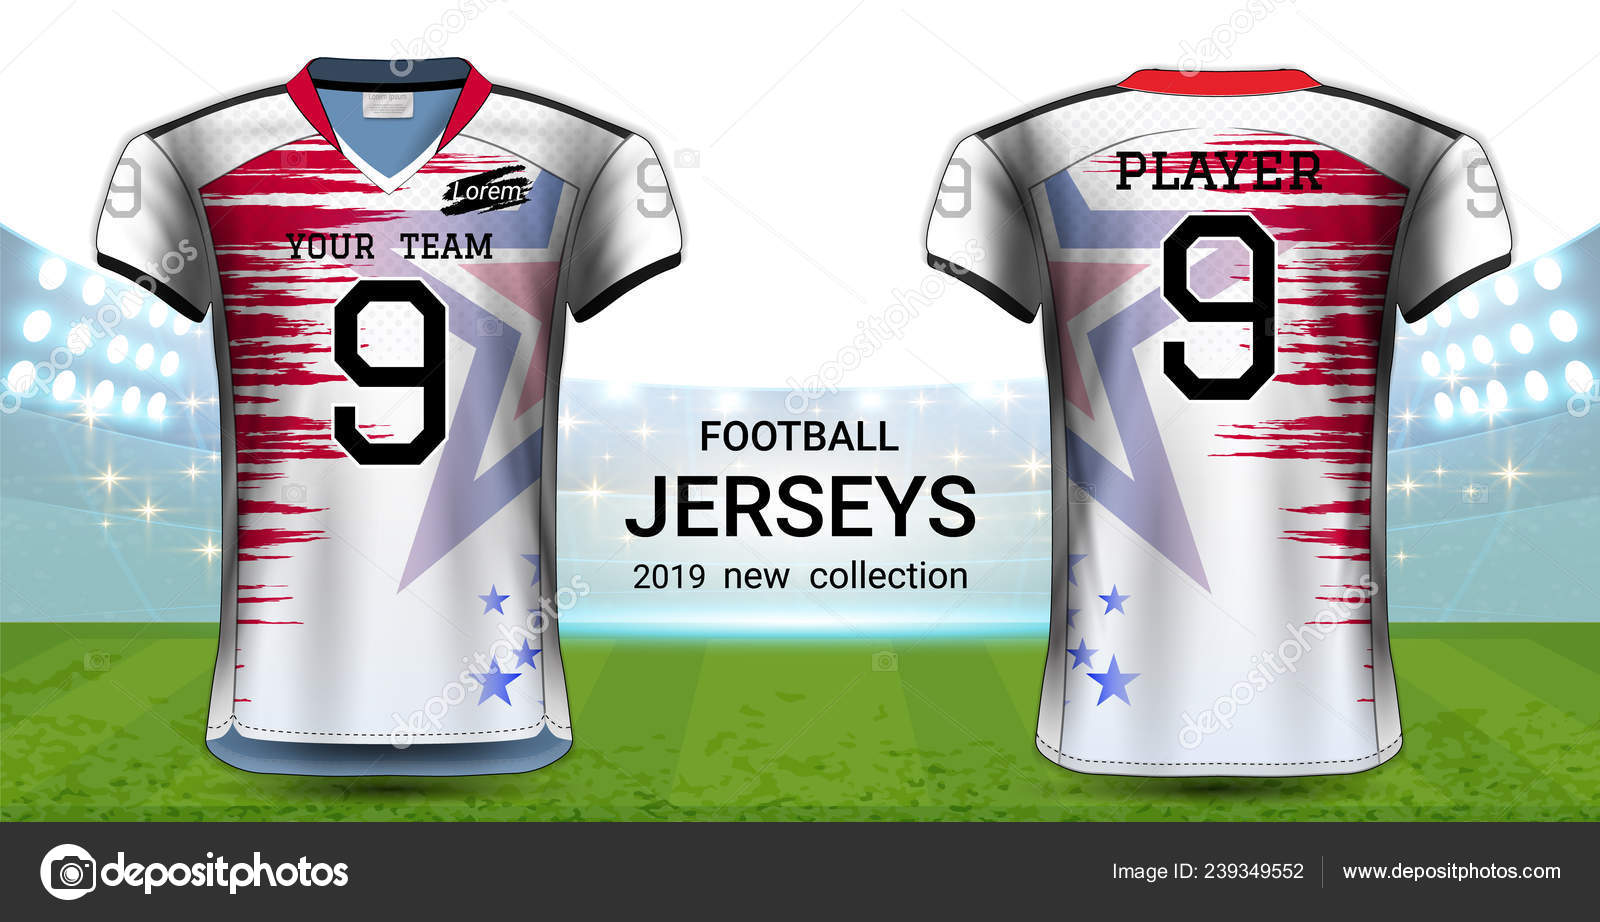 ce647c490 American Football Soccer Jerseys Uniforms Realistic Graphic Design ...